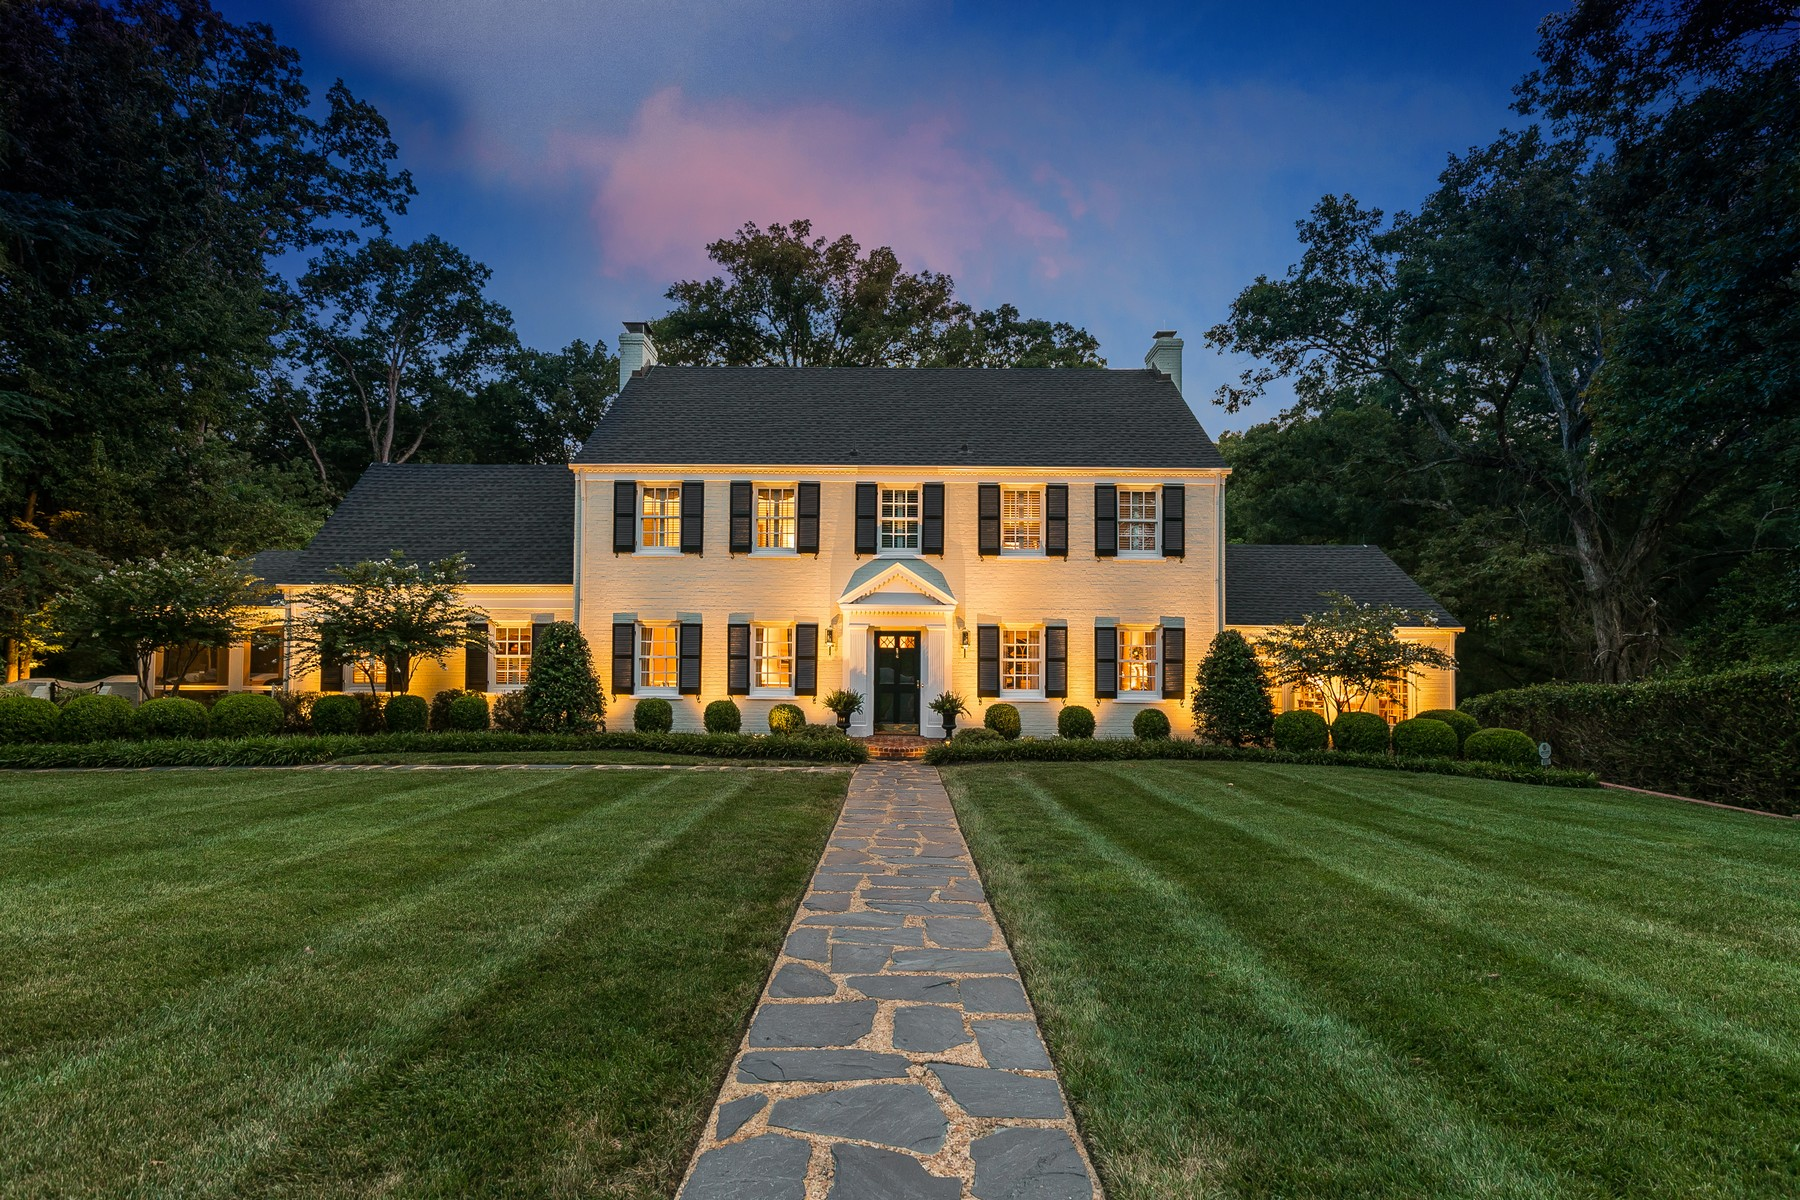 Single Family Homes for Active at Mooreland Farms 8907 Tolman Road Henrico, Virginia 23229 United States